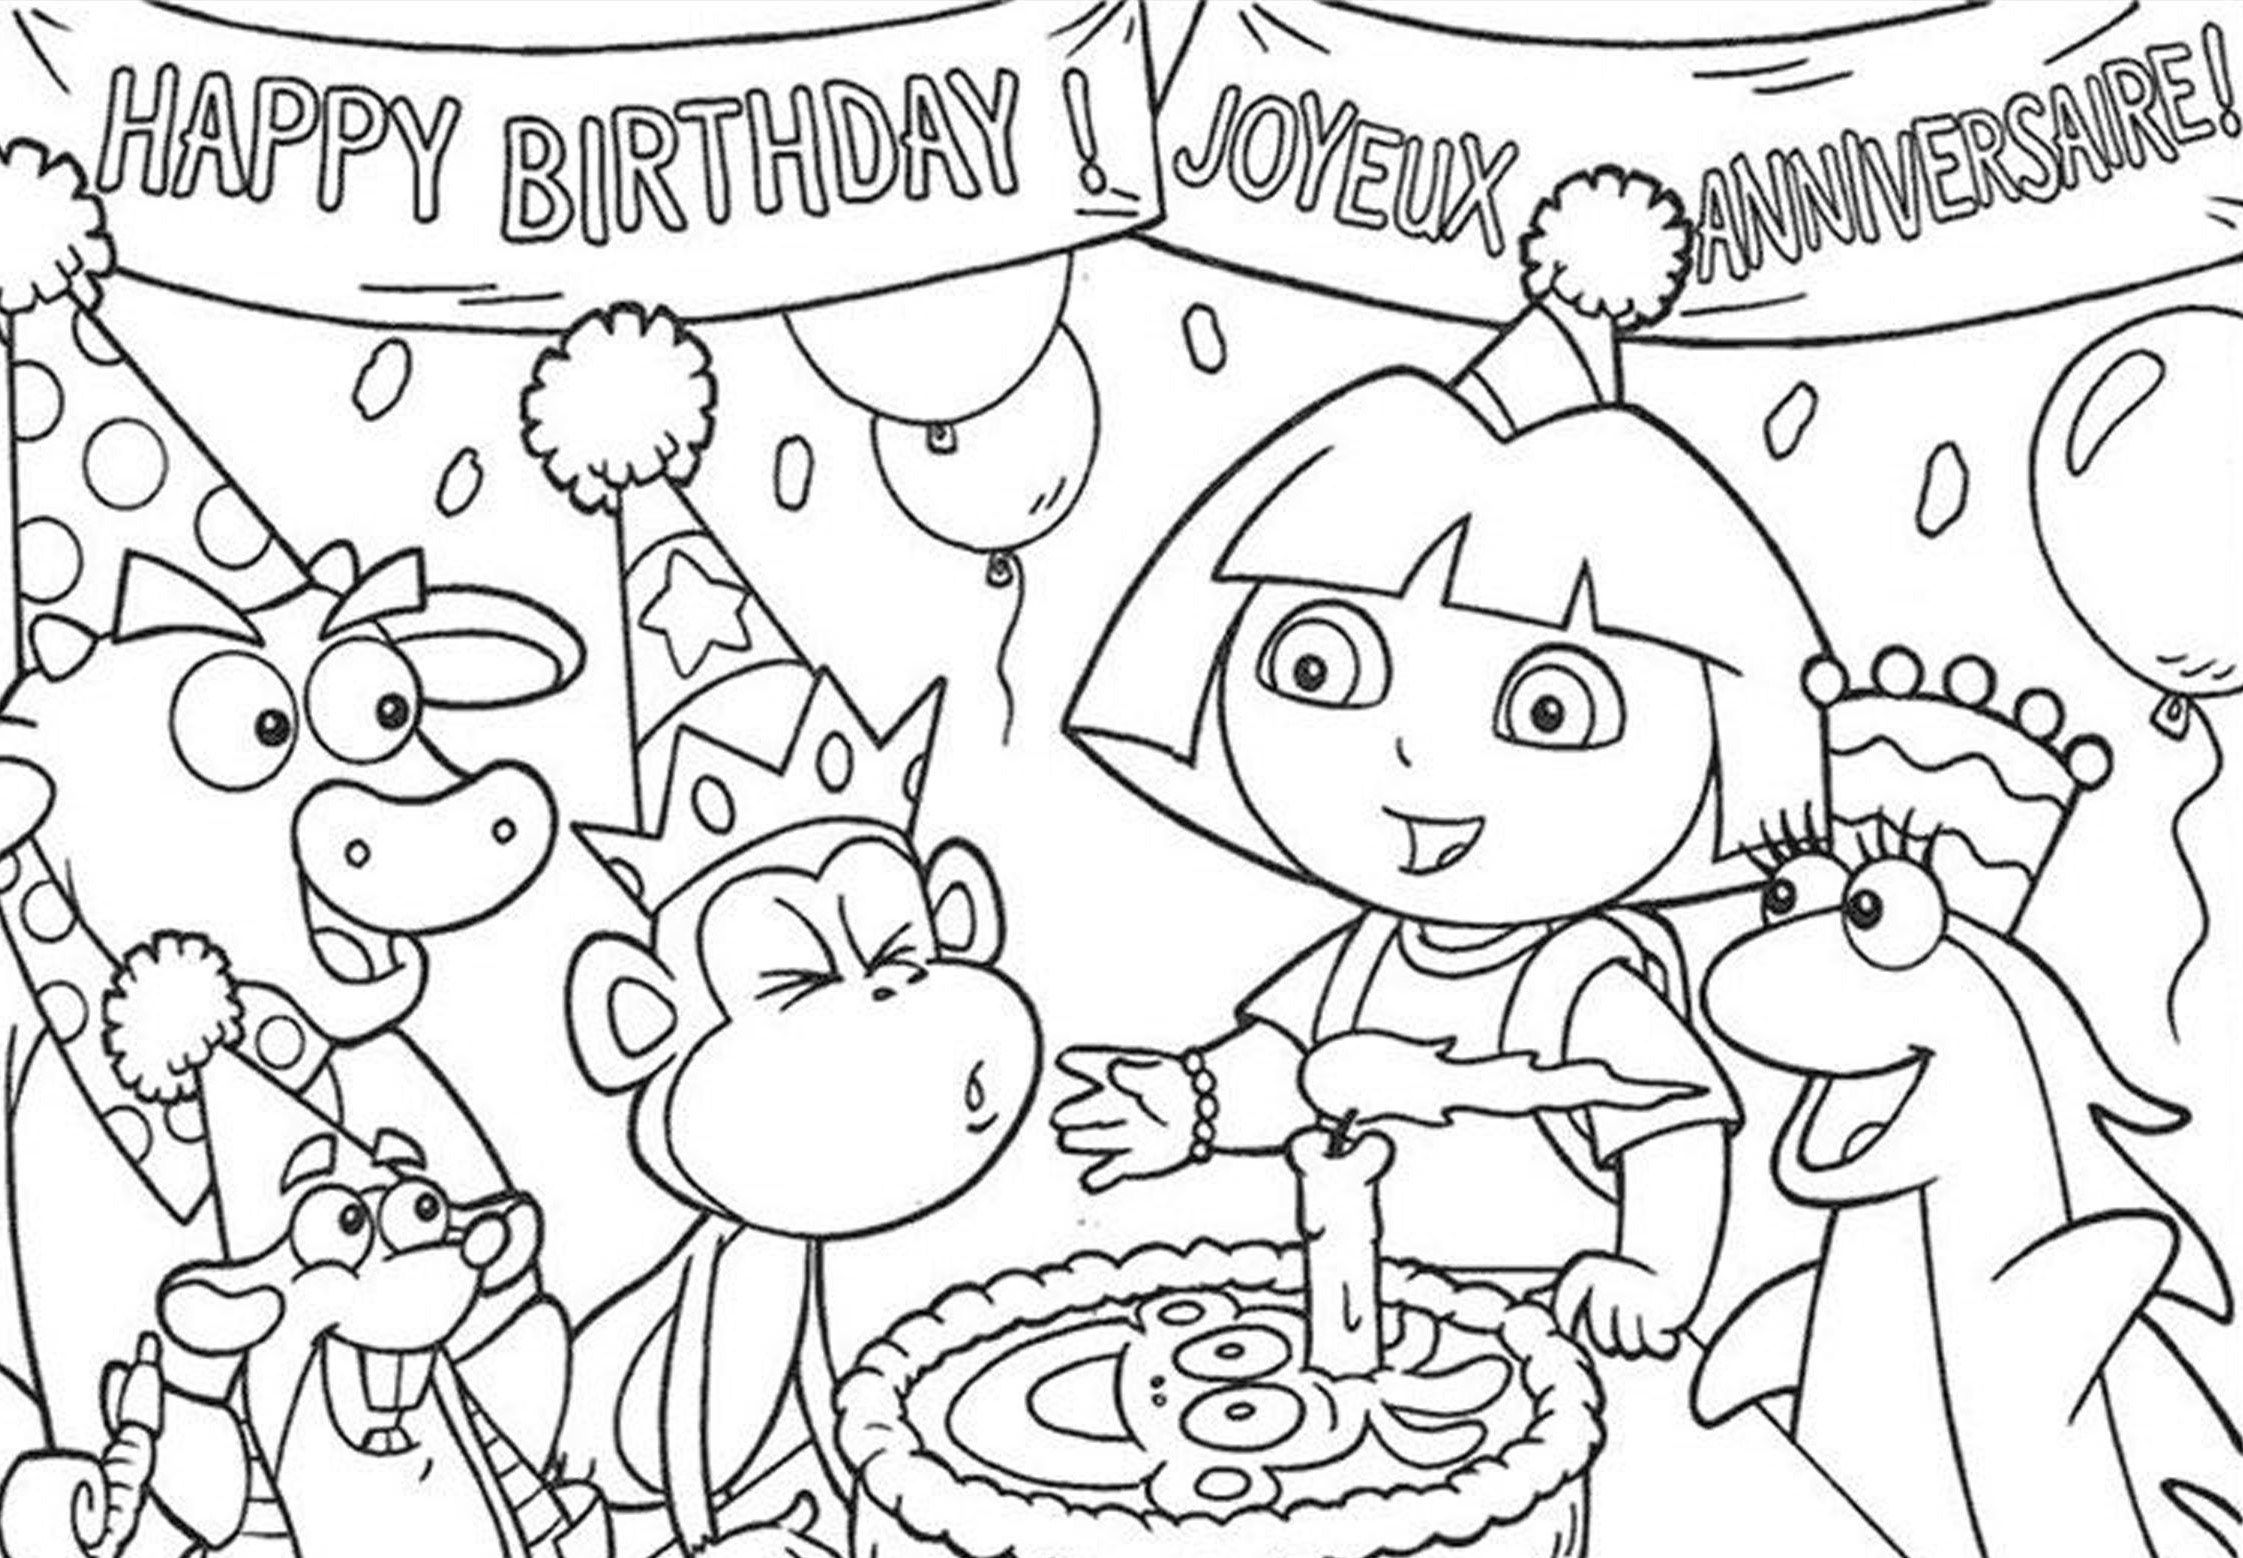 Grab Your New Coloring Pages Dora Download Https Gethighit Com New Coloring Pages Dora Download Birthday Coloring Pages Dora Coloring Love Coloring Pages